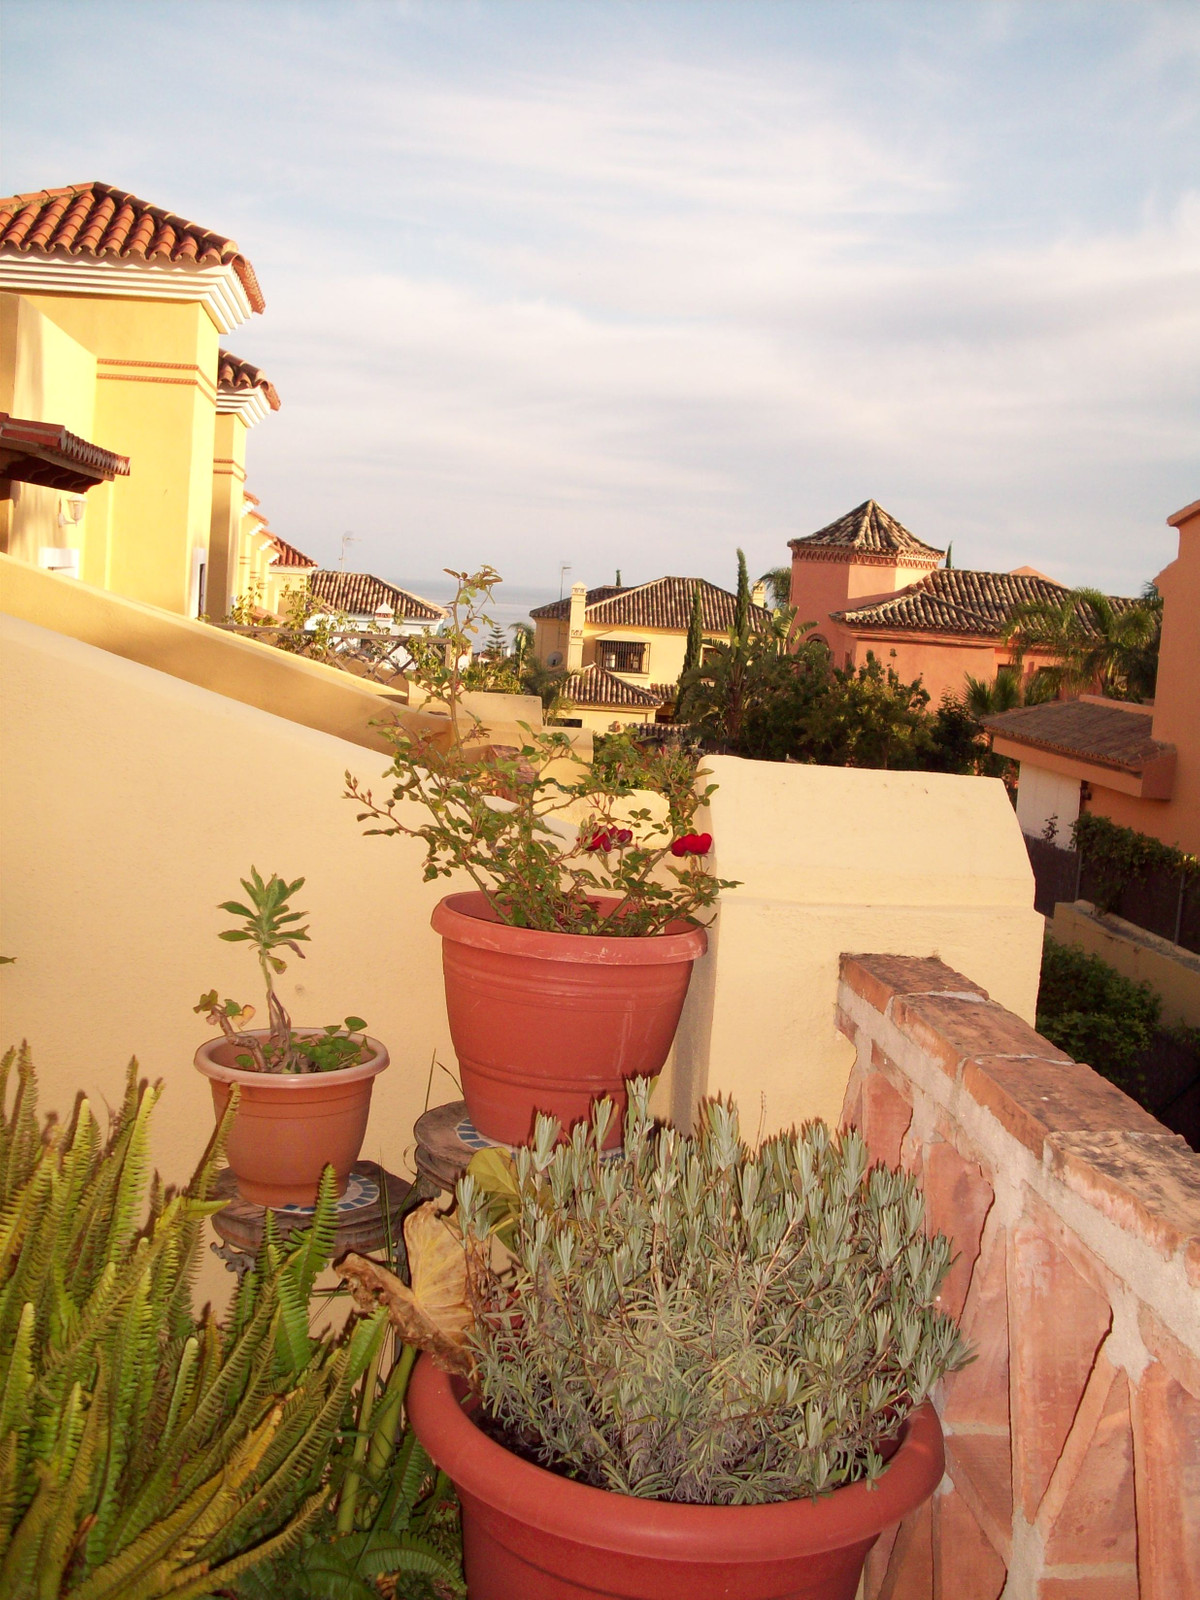 Great opportunity to purchase a charming semidetached townhouse in small residential complex in the ,Spain